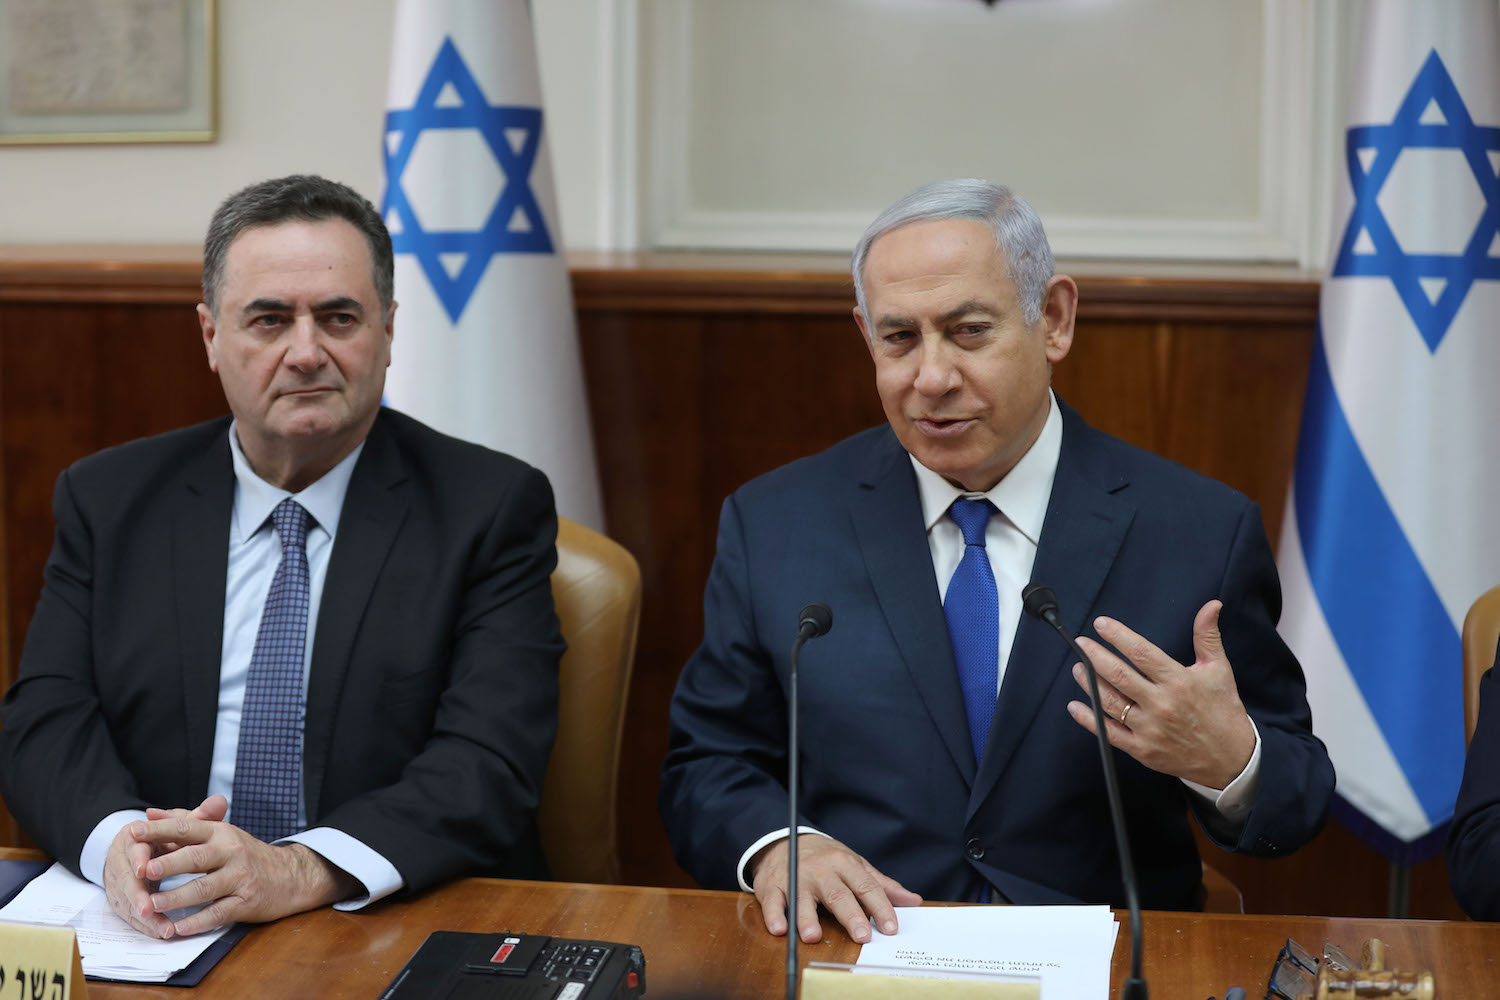 Israeli Prime Minister Benjamin Netanyahu (R) speaks as he sits next to Minister of Foreign Affairs Israel Katz (L) during the weekly cabinet meeting at his office in Jerusalem, on Feb. 24.